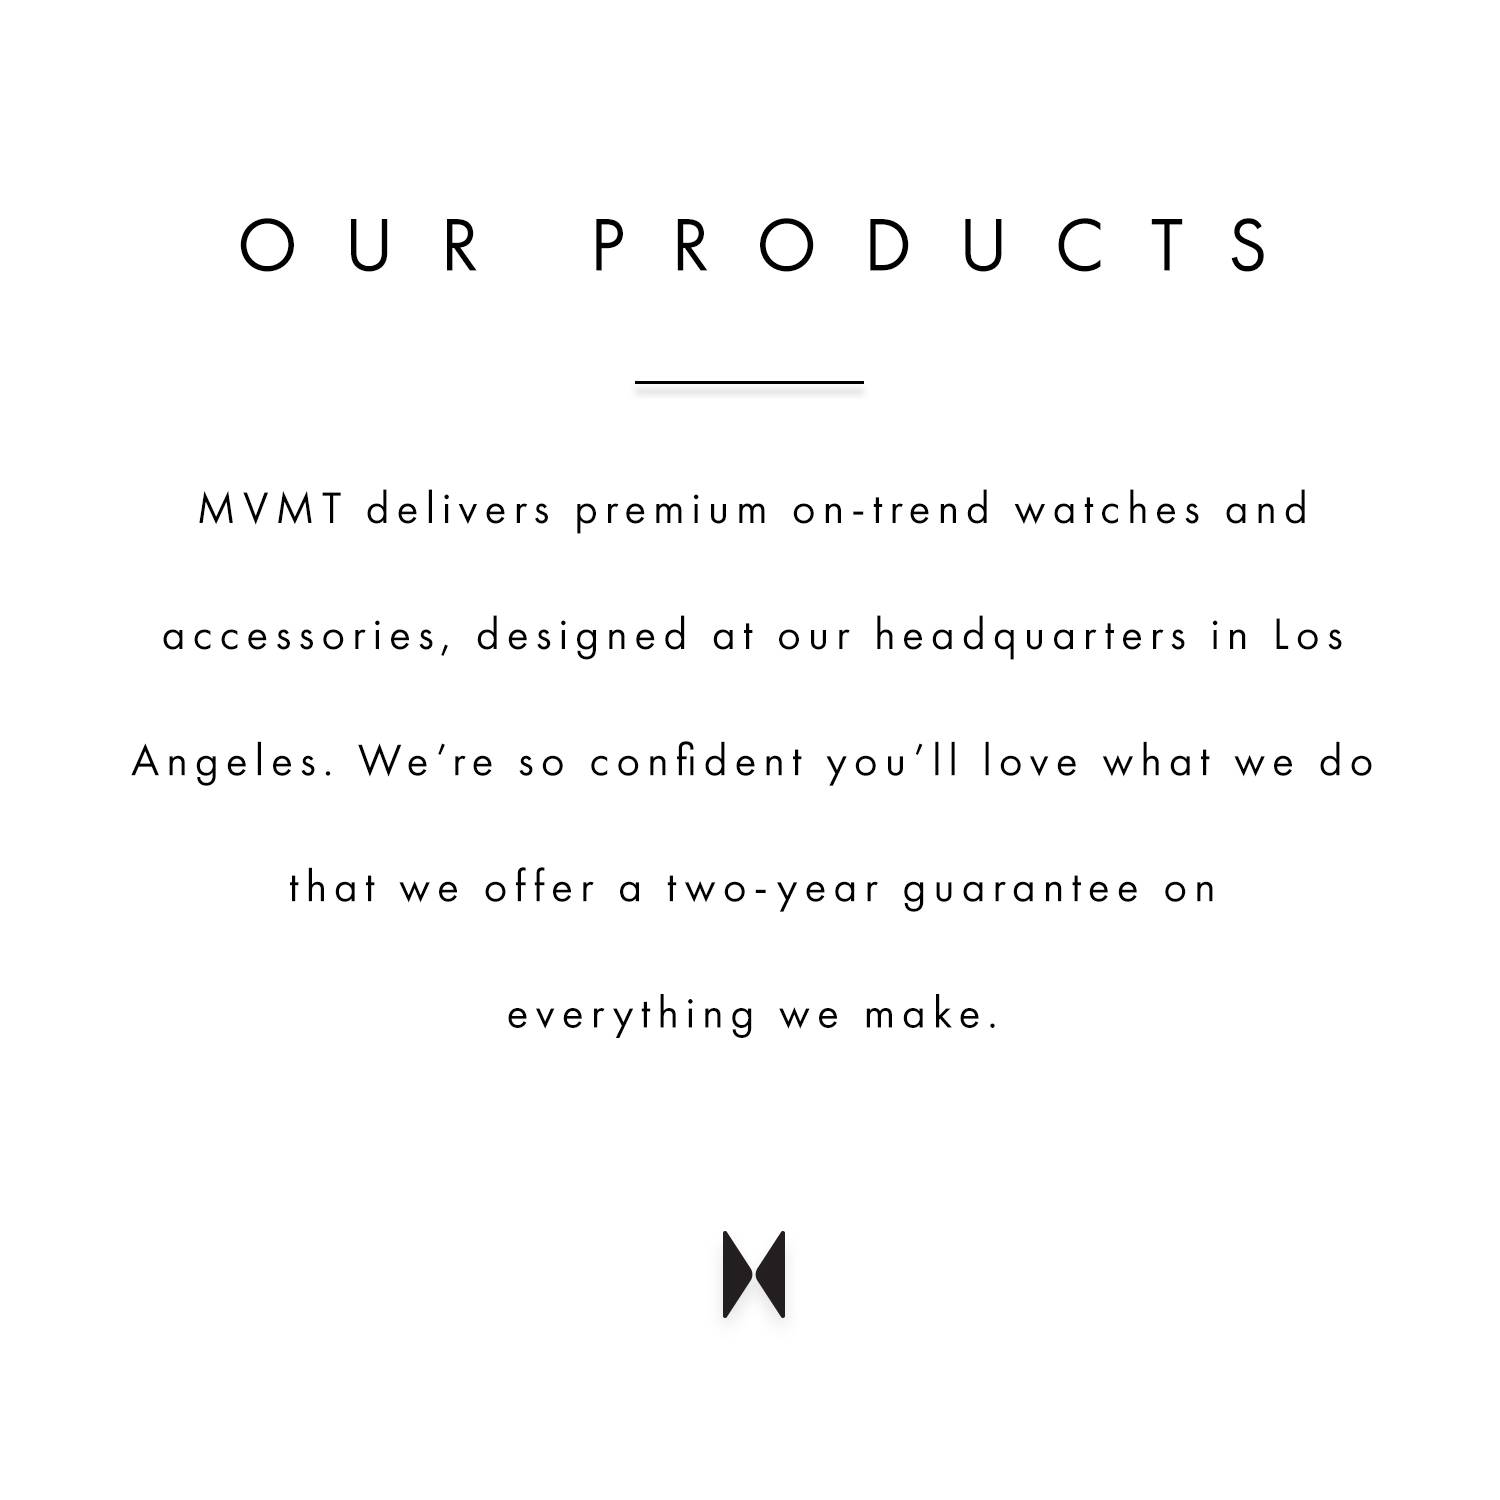 Our products. MVMT deslivers premium on-trend watches and accessories, designed at our headquarters in Los Angeles. We're so confident you'll love what we do that we offer a two-year guarantee on everything we make.